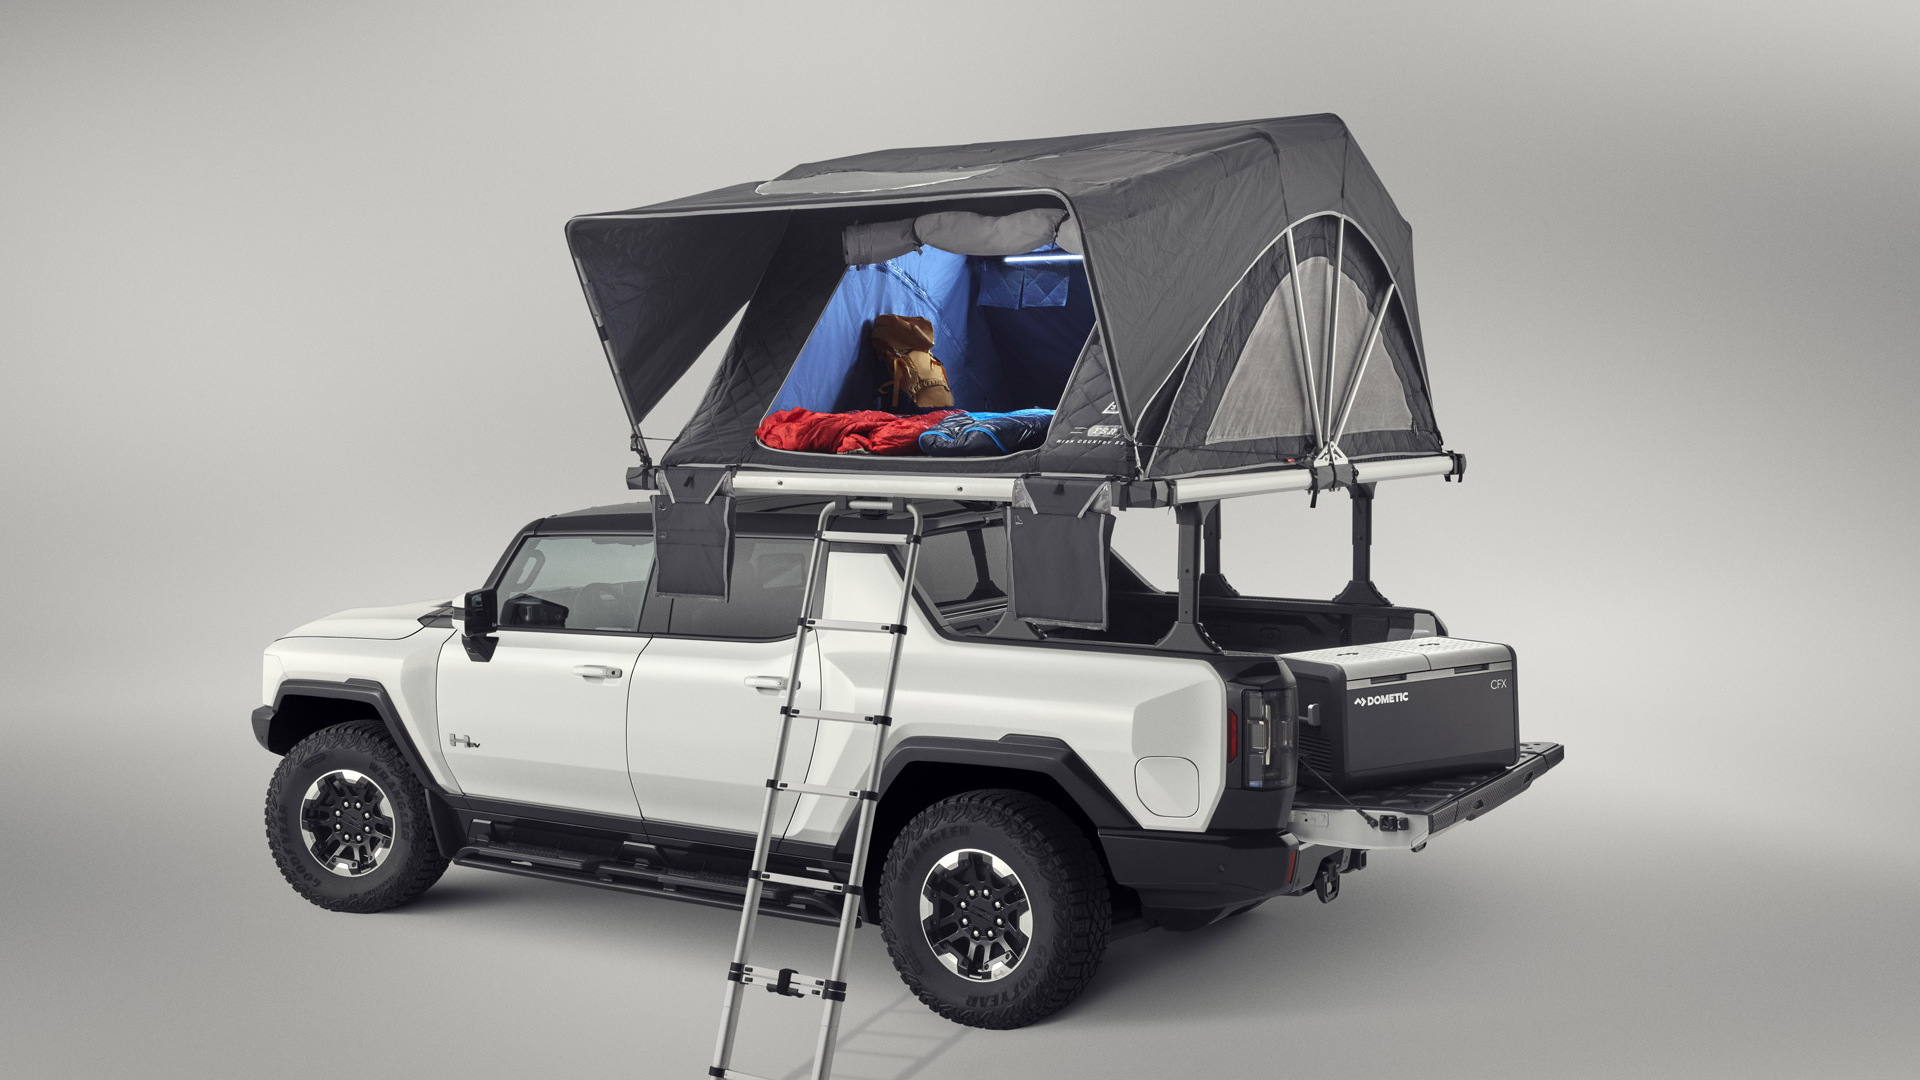 2022 GMC Hummer EV fitted with accessories - 2021 SEMA show